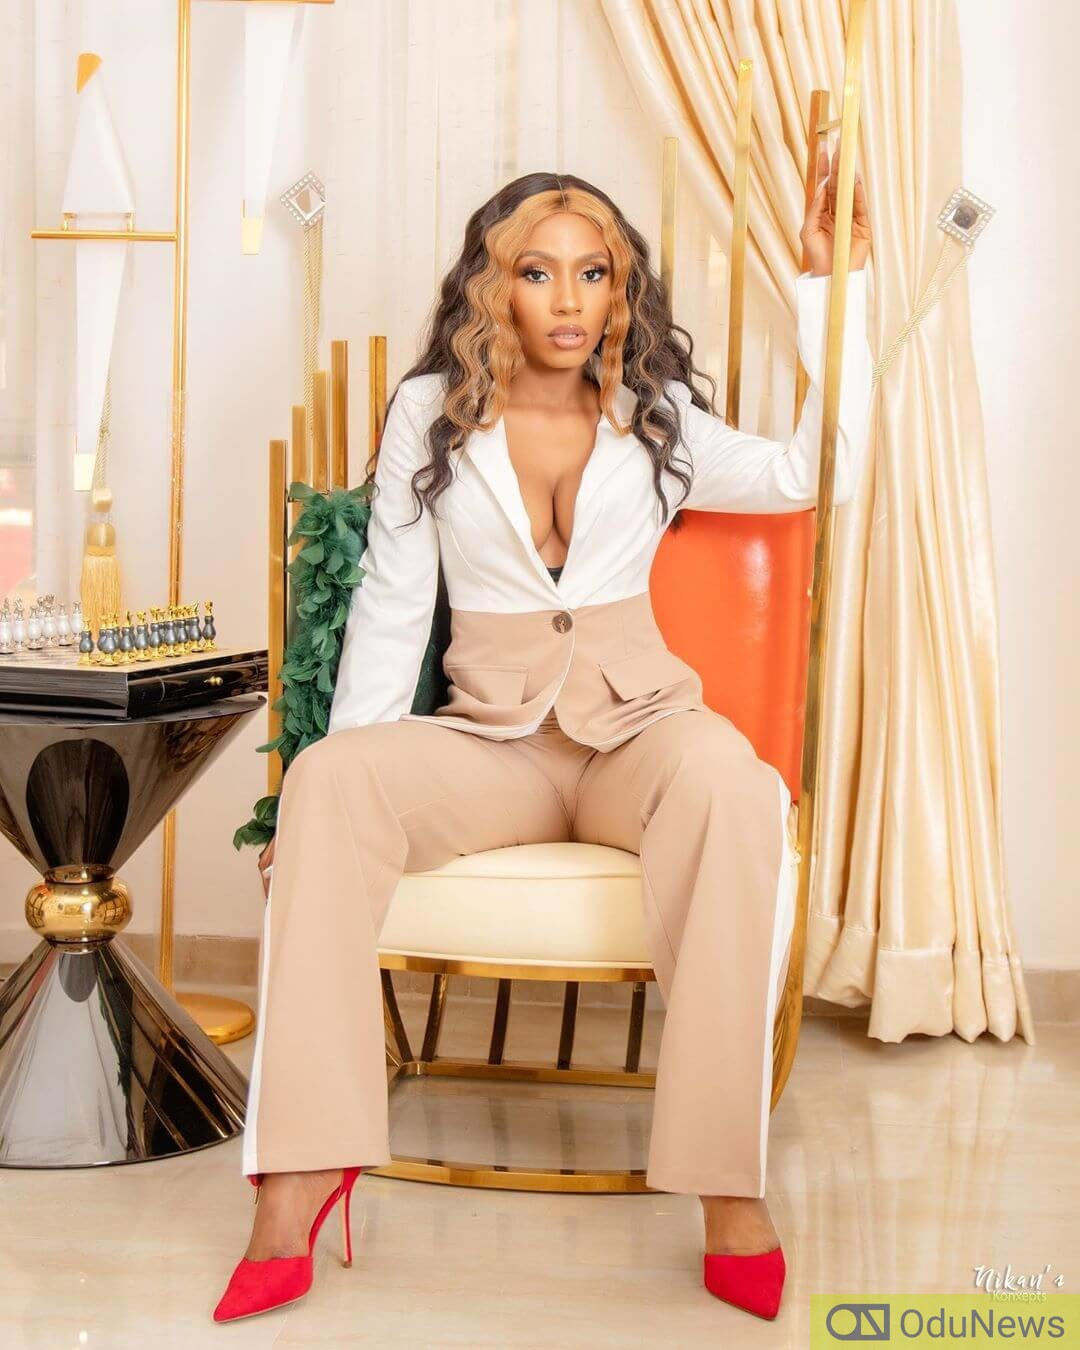 Mercy Eke is a sight for sore eyes in the video